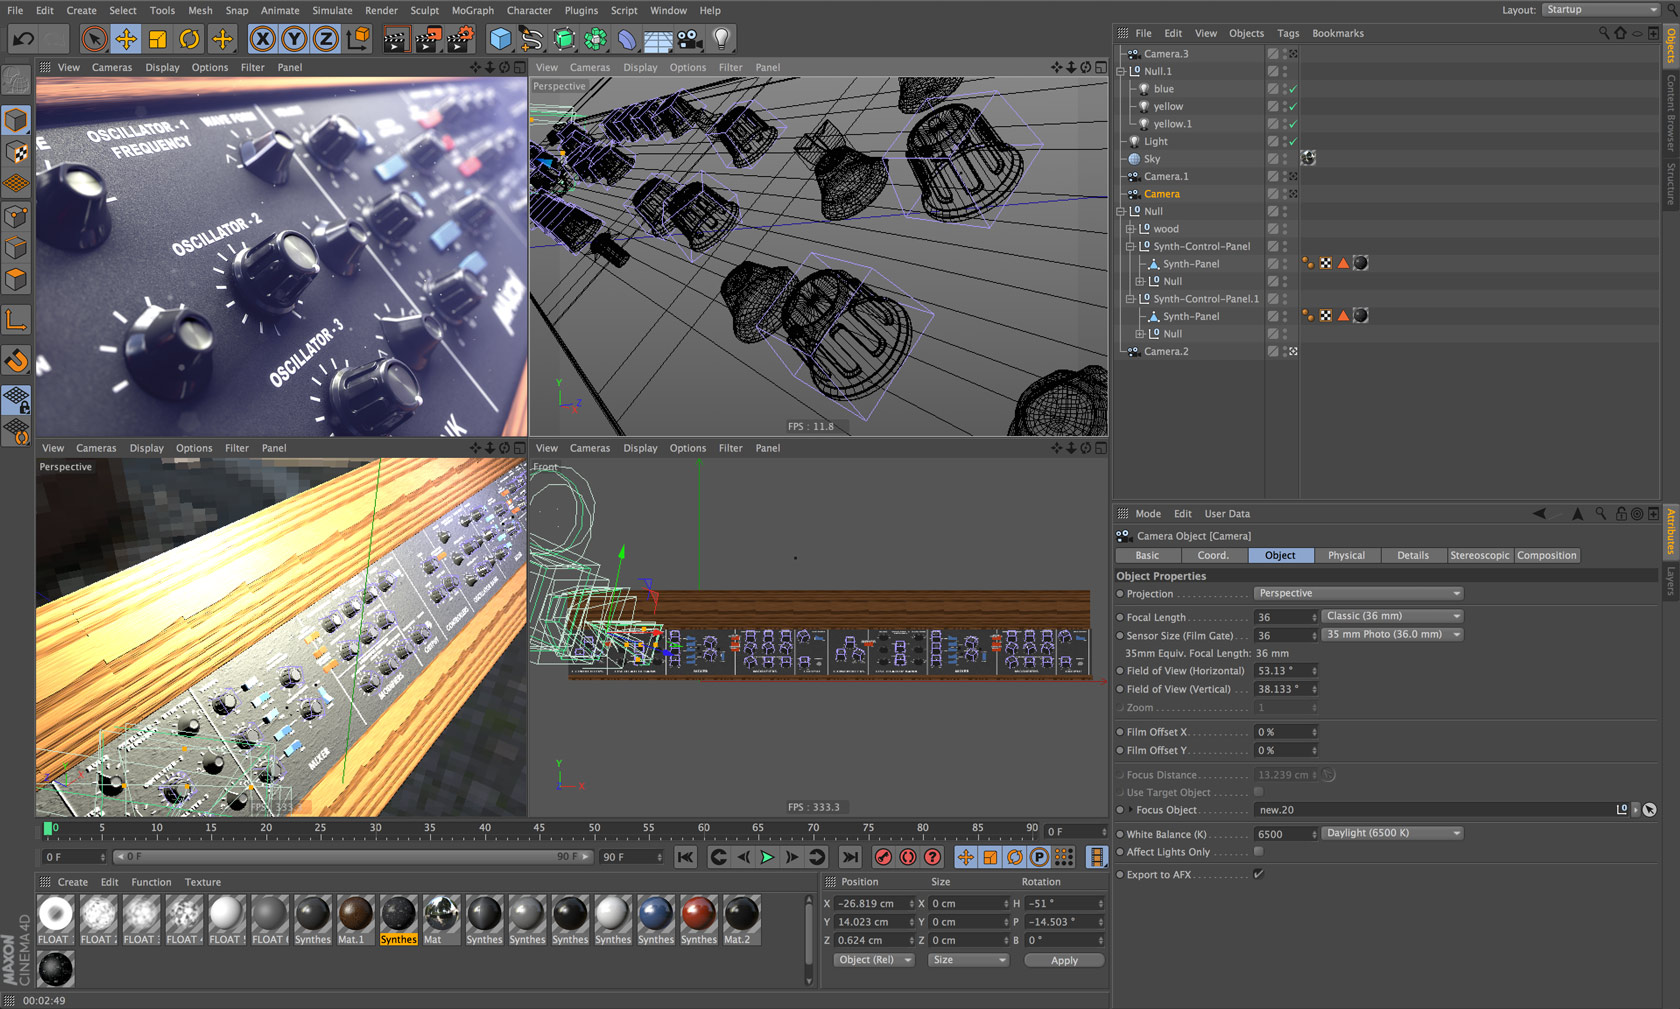 Maxon Cinema 4d R15 License Buy Discounted Programs At Up To 80 Off